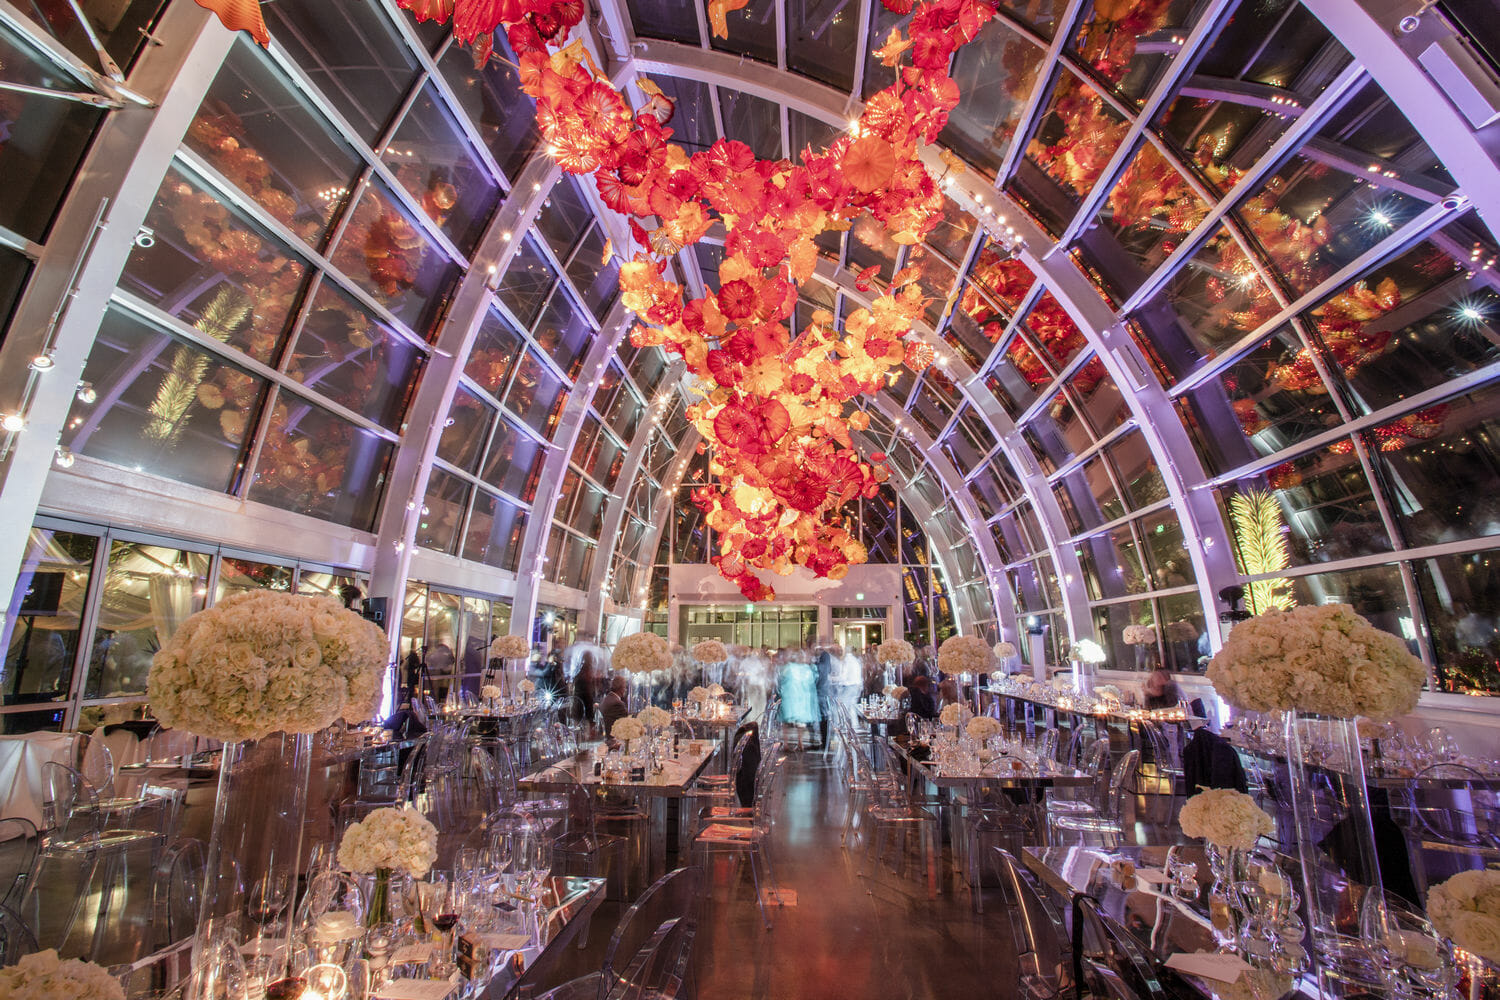 wedding-photographer-chihuly-garden-glass-seattle-lindsay-daniel-830_lndd6071